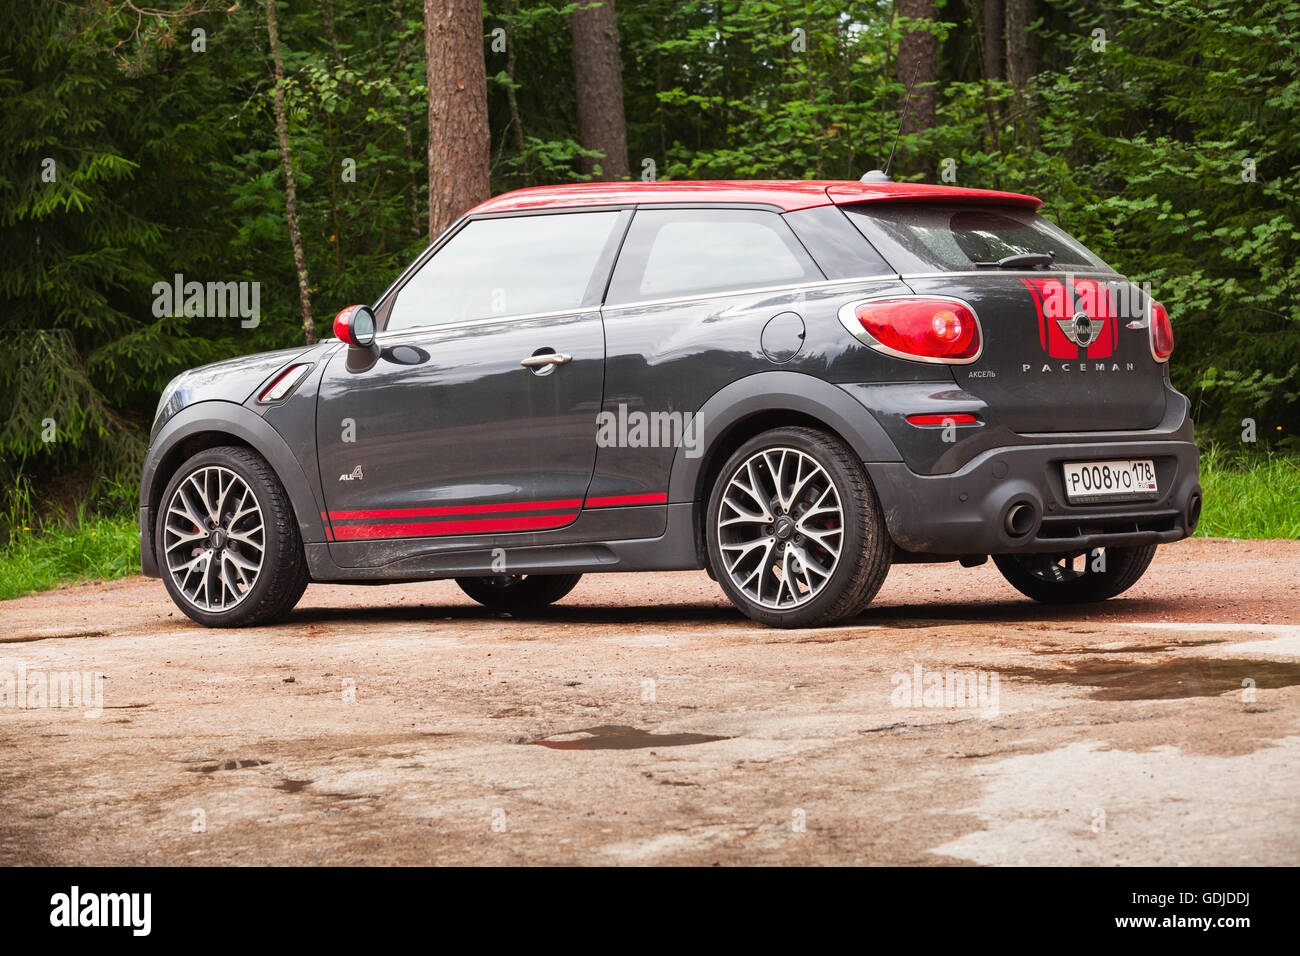 kotka finland july 16 2016 mini john cooper works paceman all4 stock photo royalty free. Black Bedroom Furniture Sets. Home Design Ideas